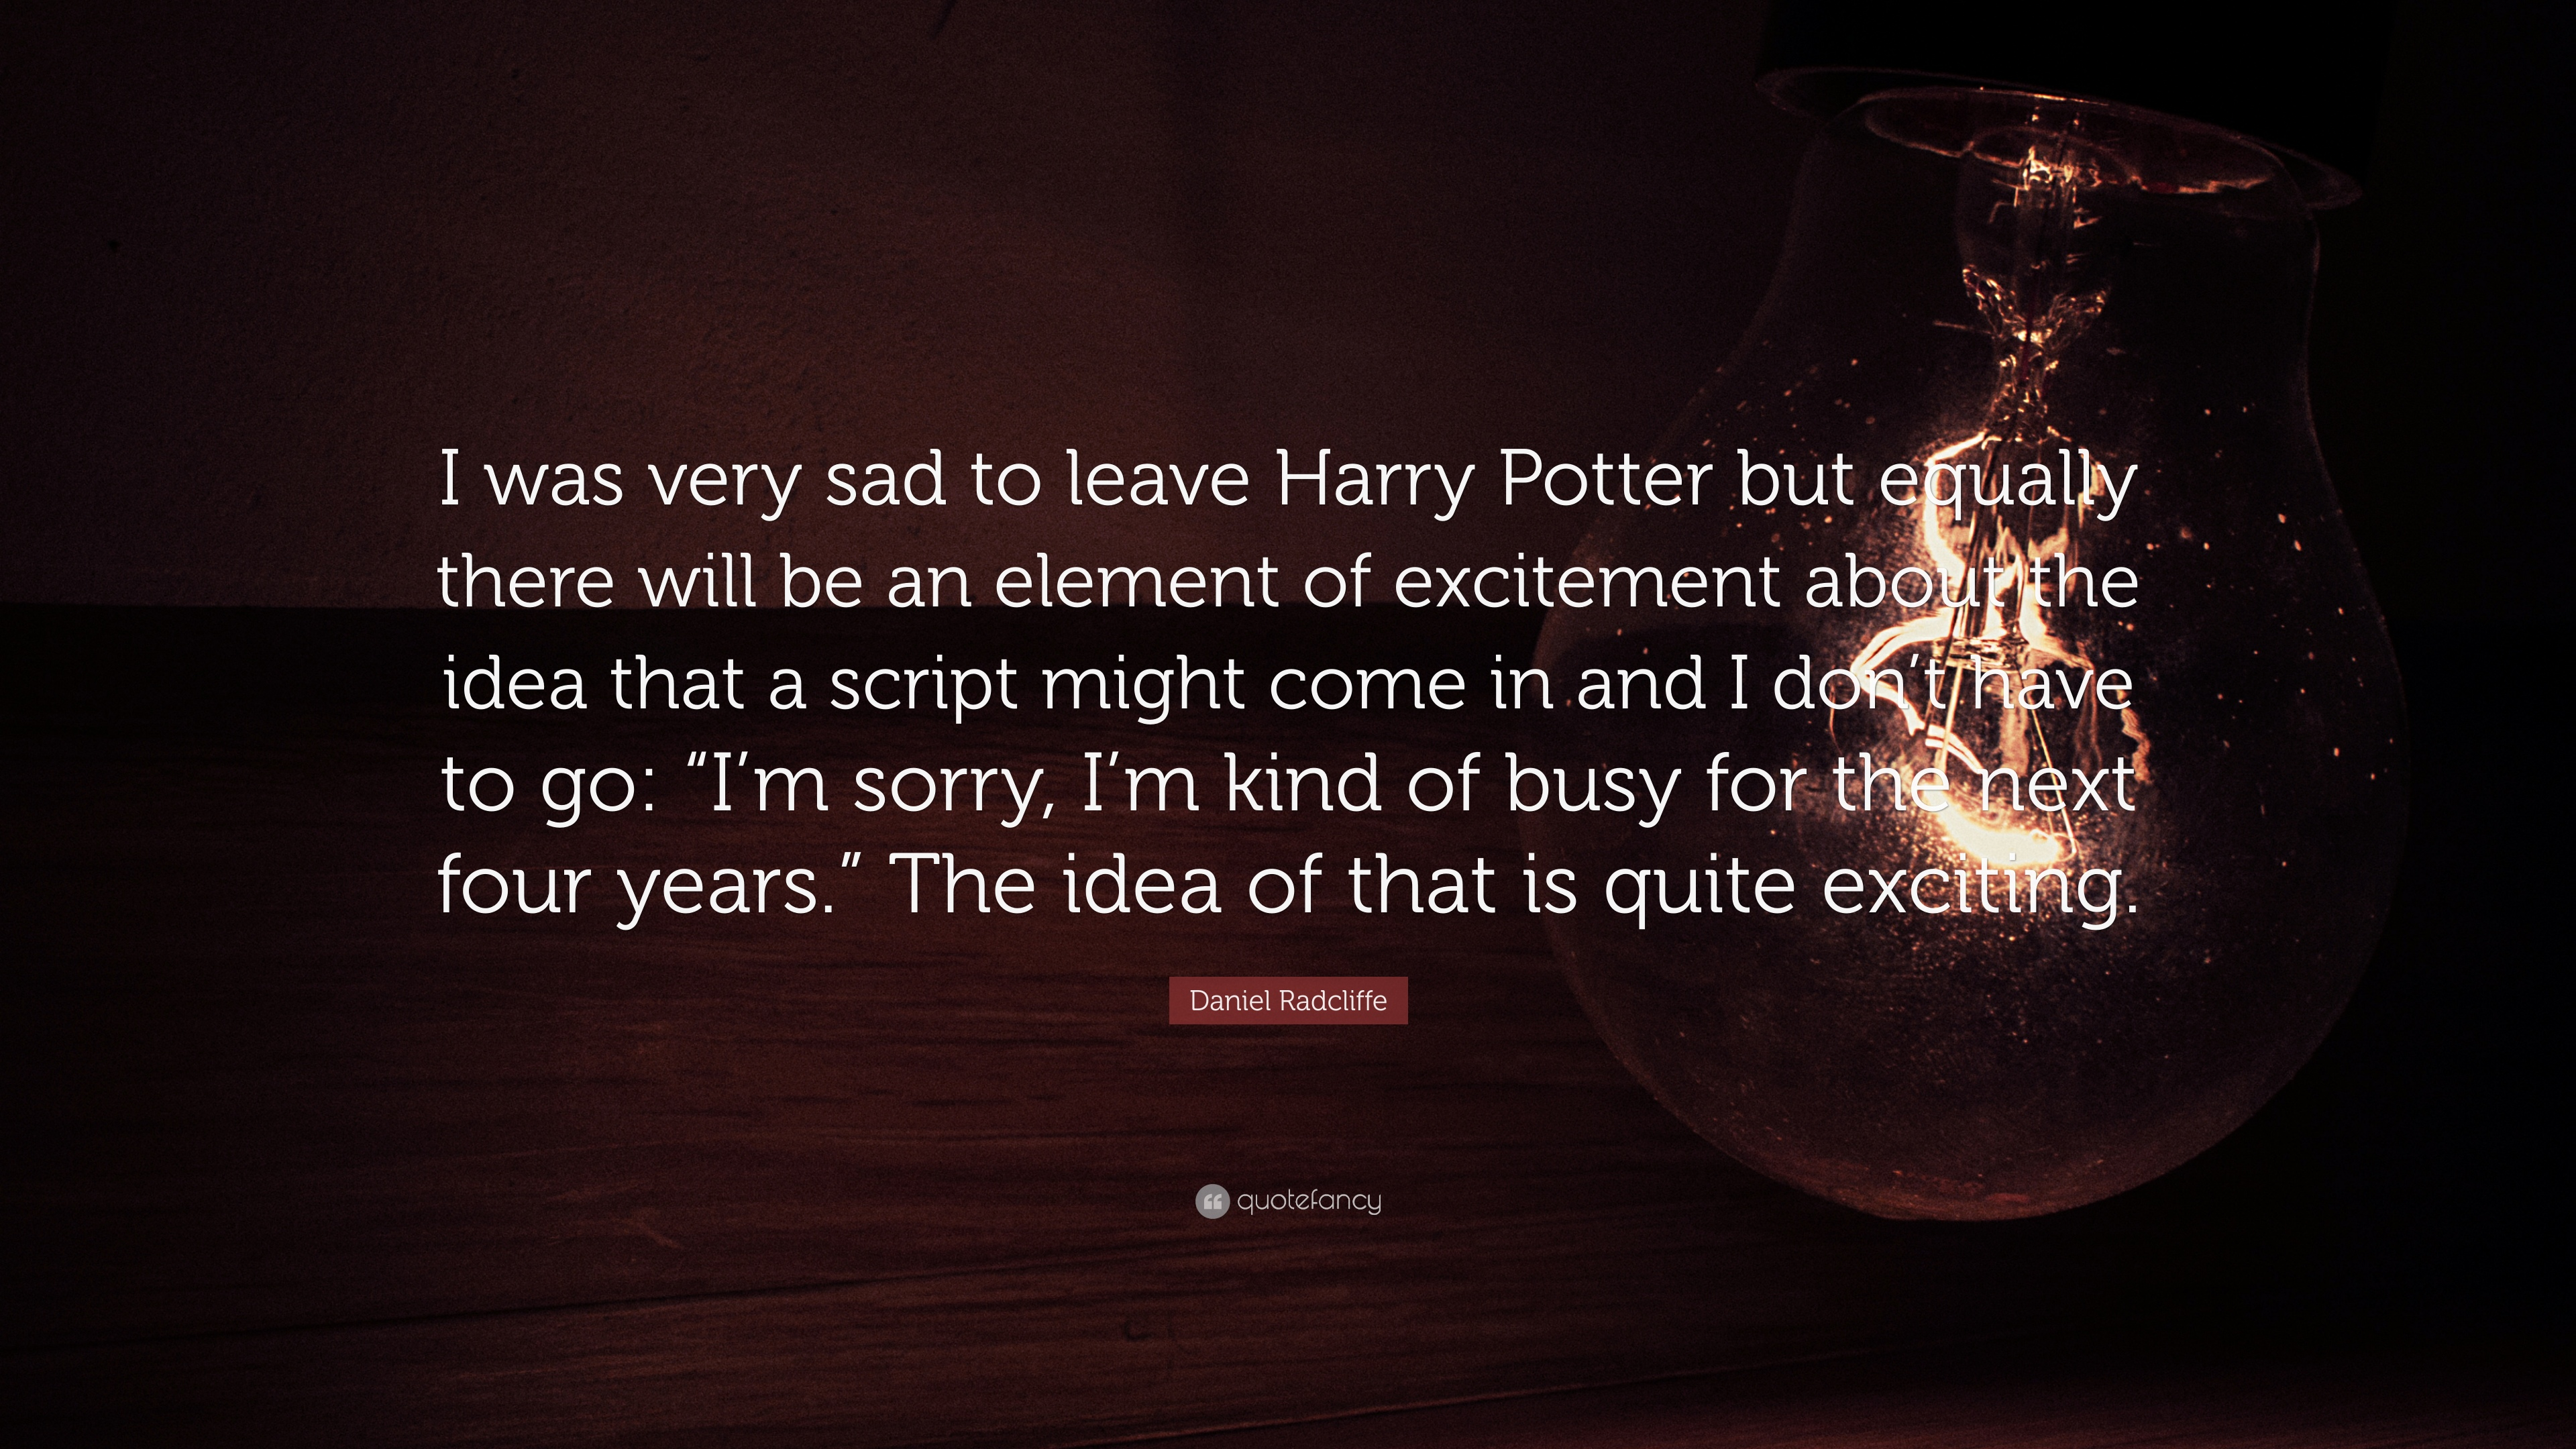 Wonderful Wallpaper Harry Potter Quote - 88703-Daniel-Radcliffe-Quote-I-was-very-sad-to-leave-Harry-Potter-but  Graphic_204171.jpg